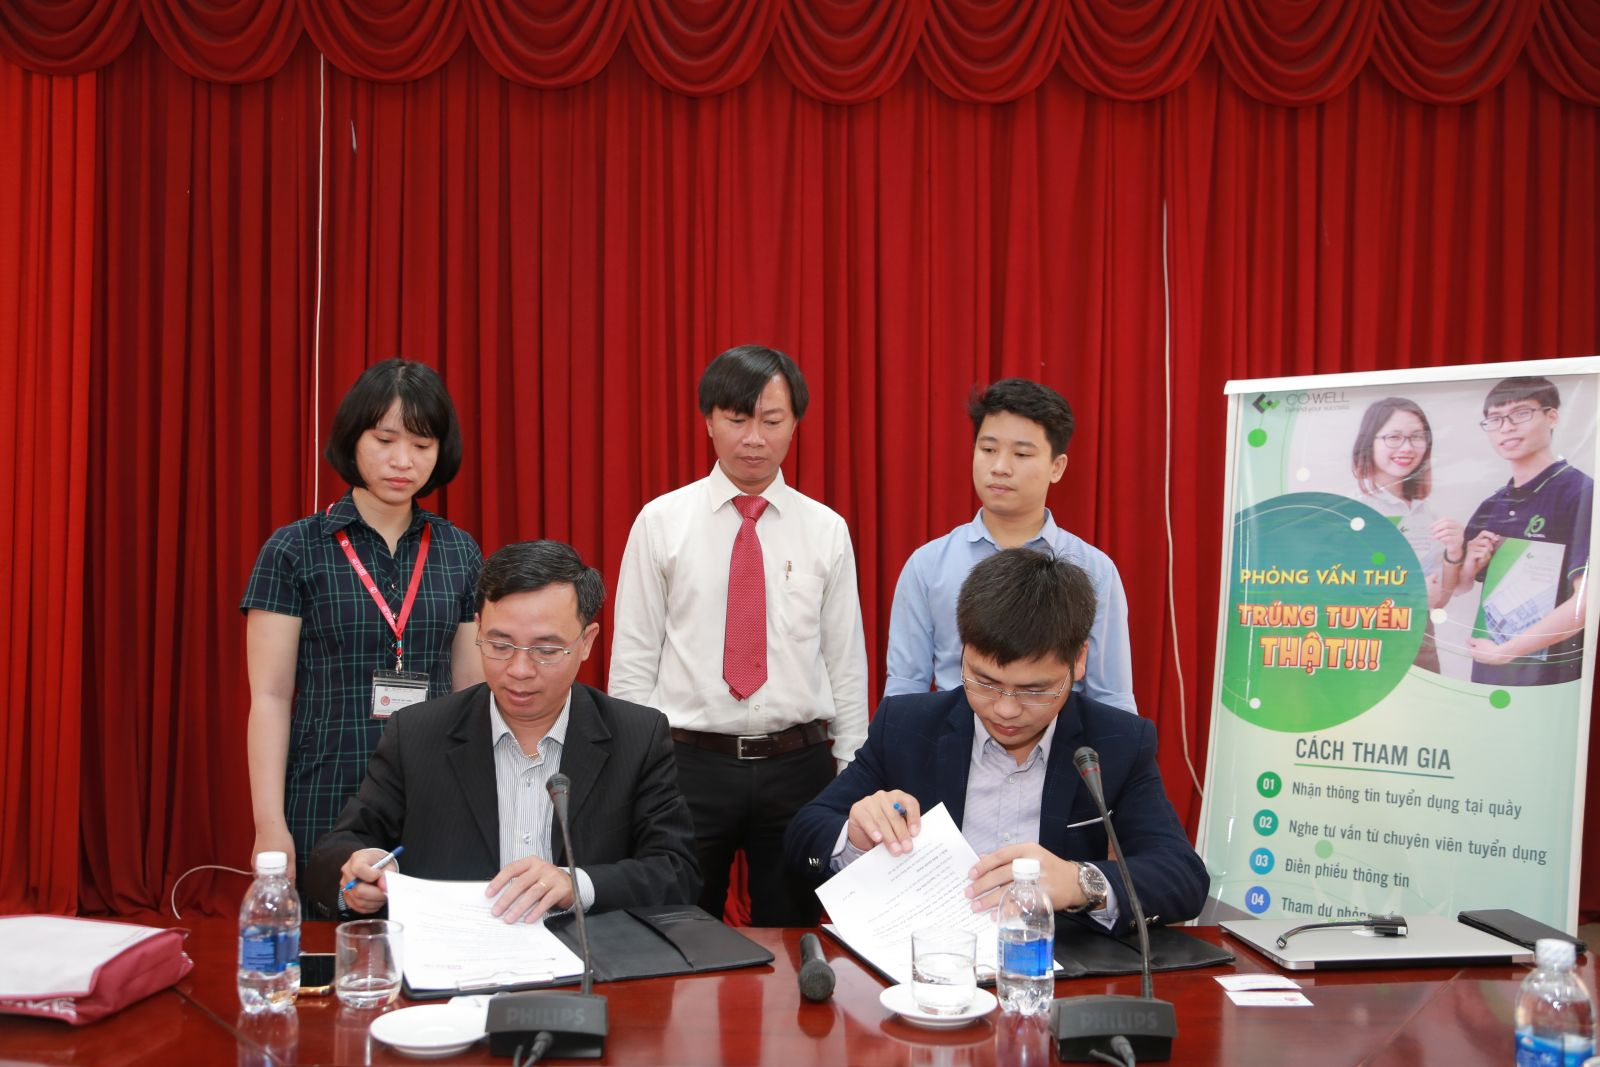 CO-WELL ASIA EXPANDING COOPERATION WITH UNIVERSITIES THROUGHOUT THE COUNTRY